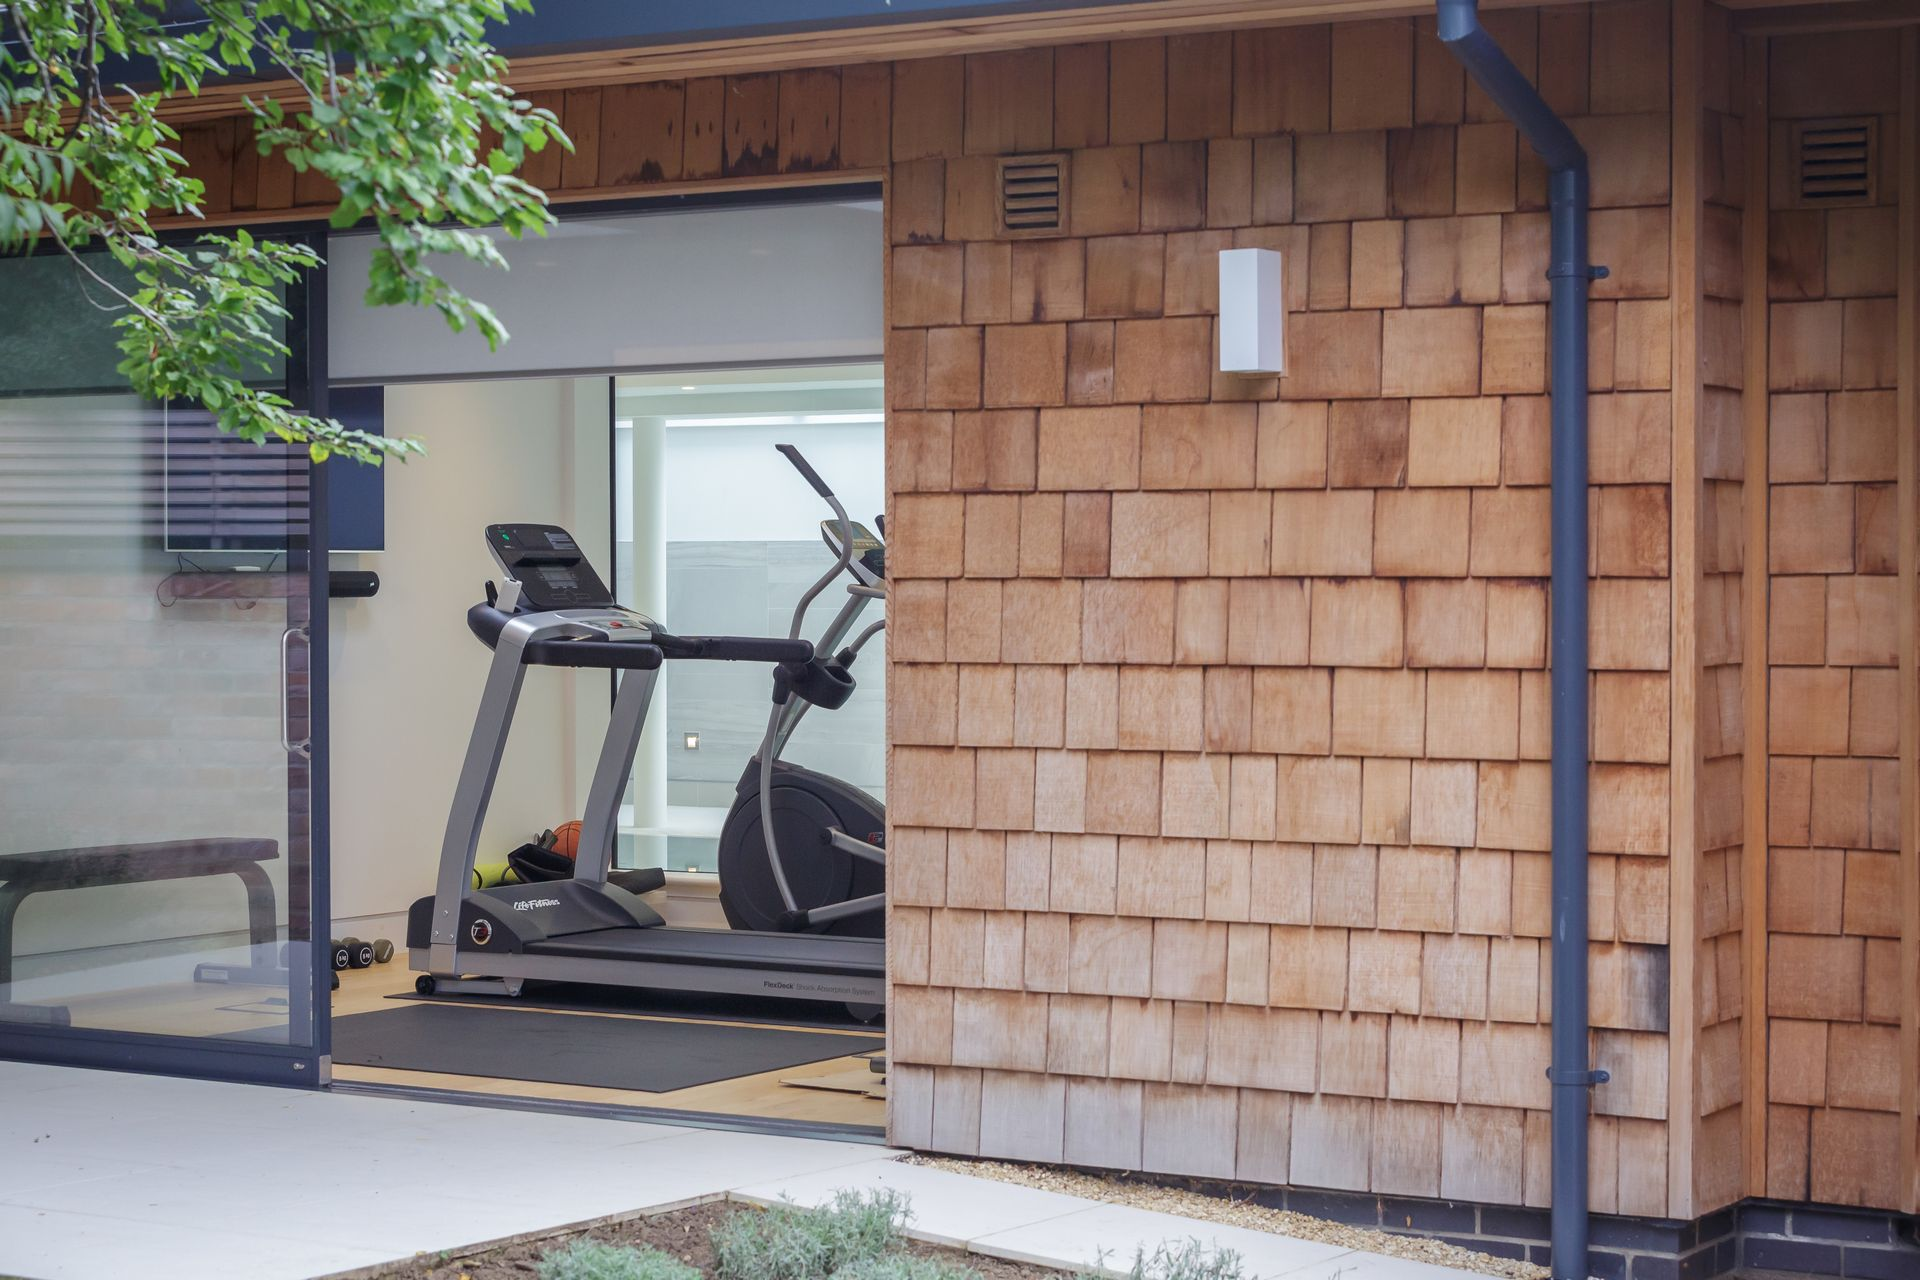 CE - Douro Court - Gym from outside 003